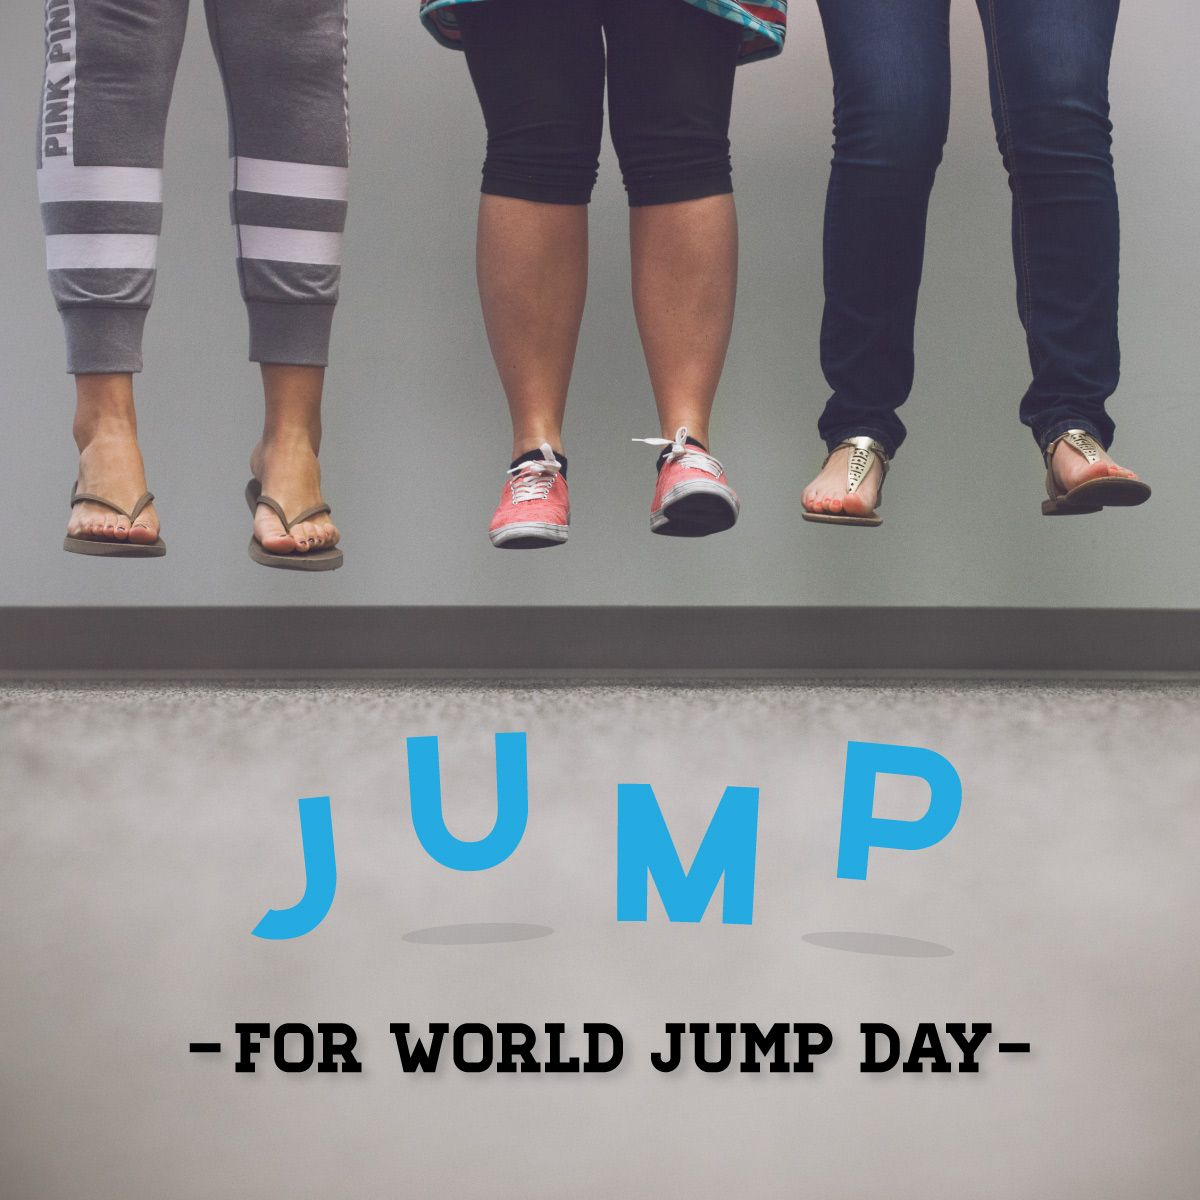 JULY 20 is World Jump Day! The first World Jump Day in 2006 was a (joking) attempt to get enough people to jump at the same time to change the Earth's orbit.